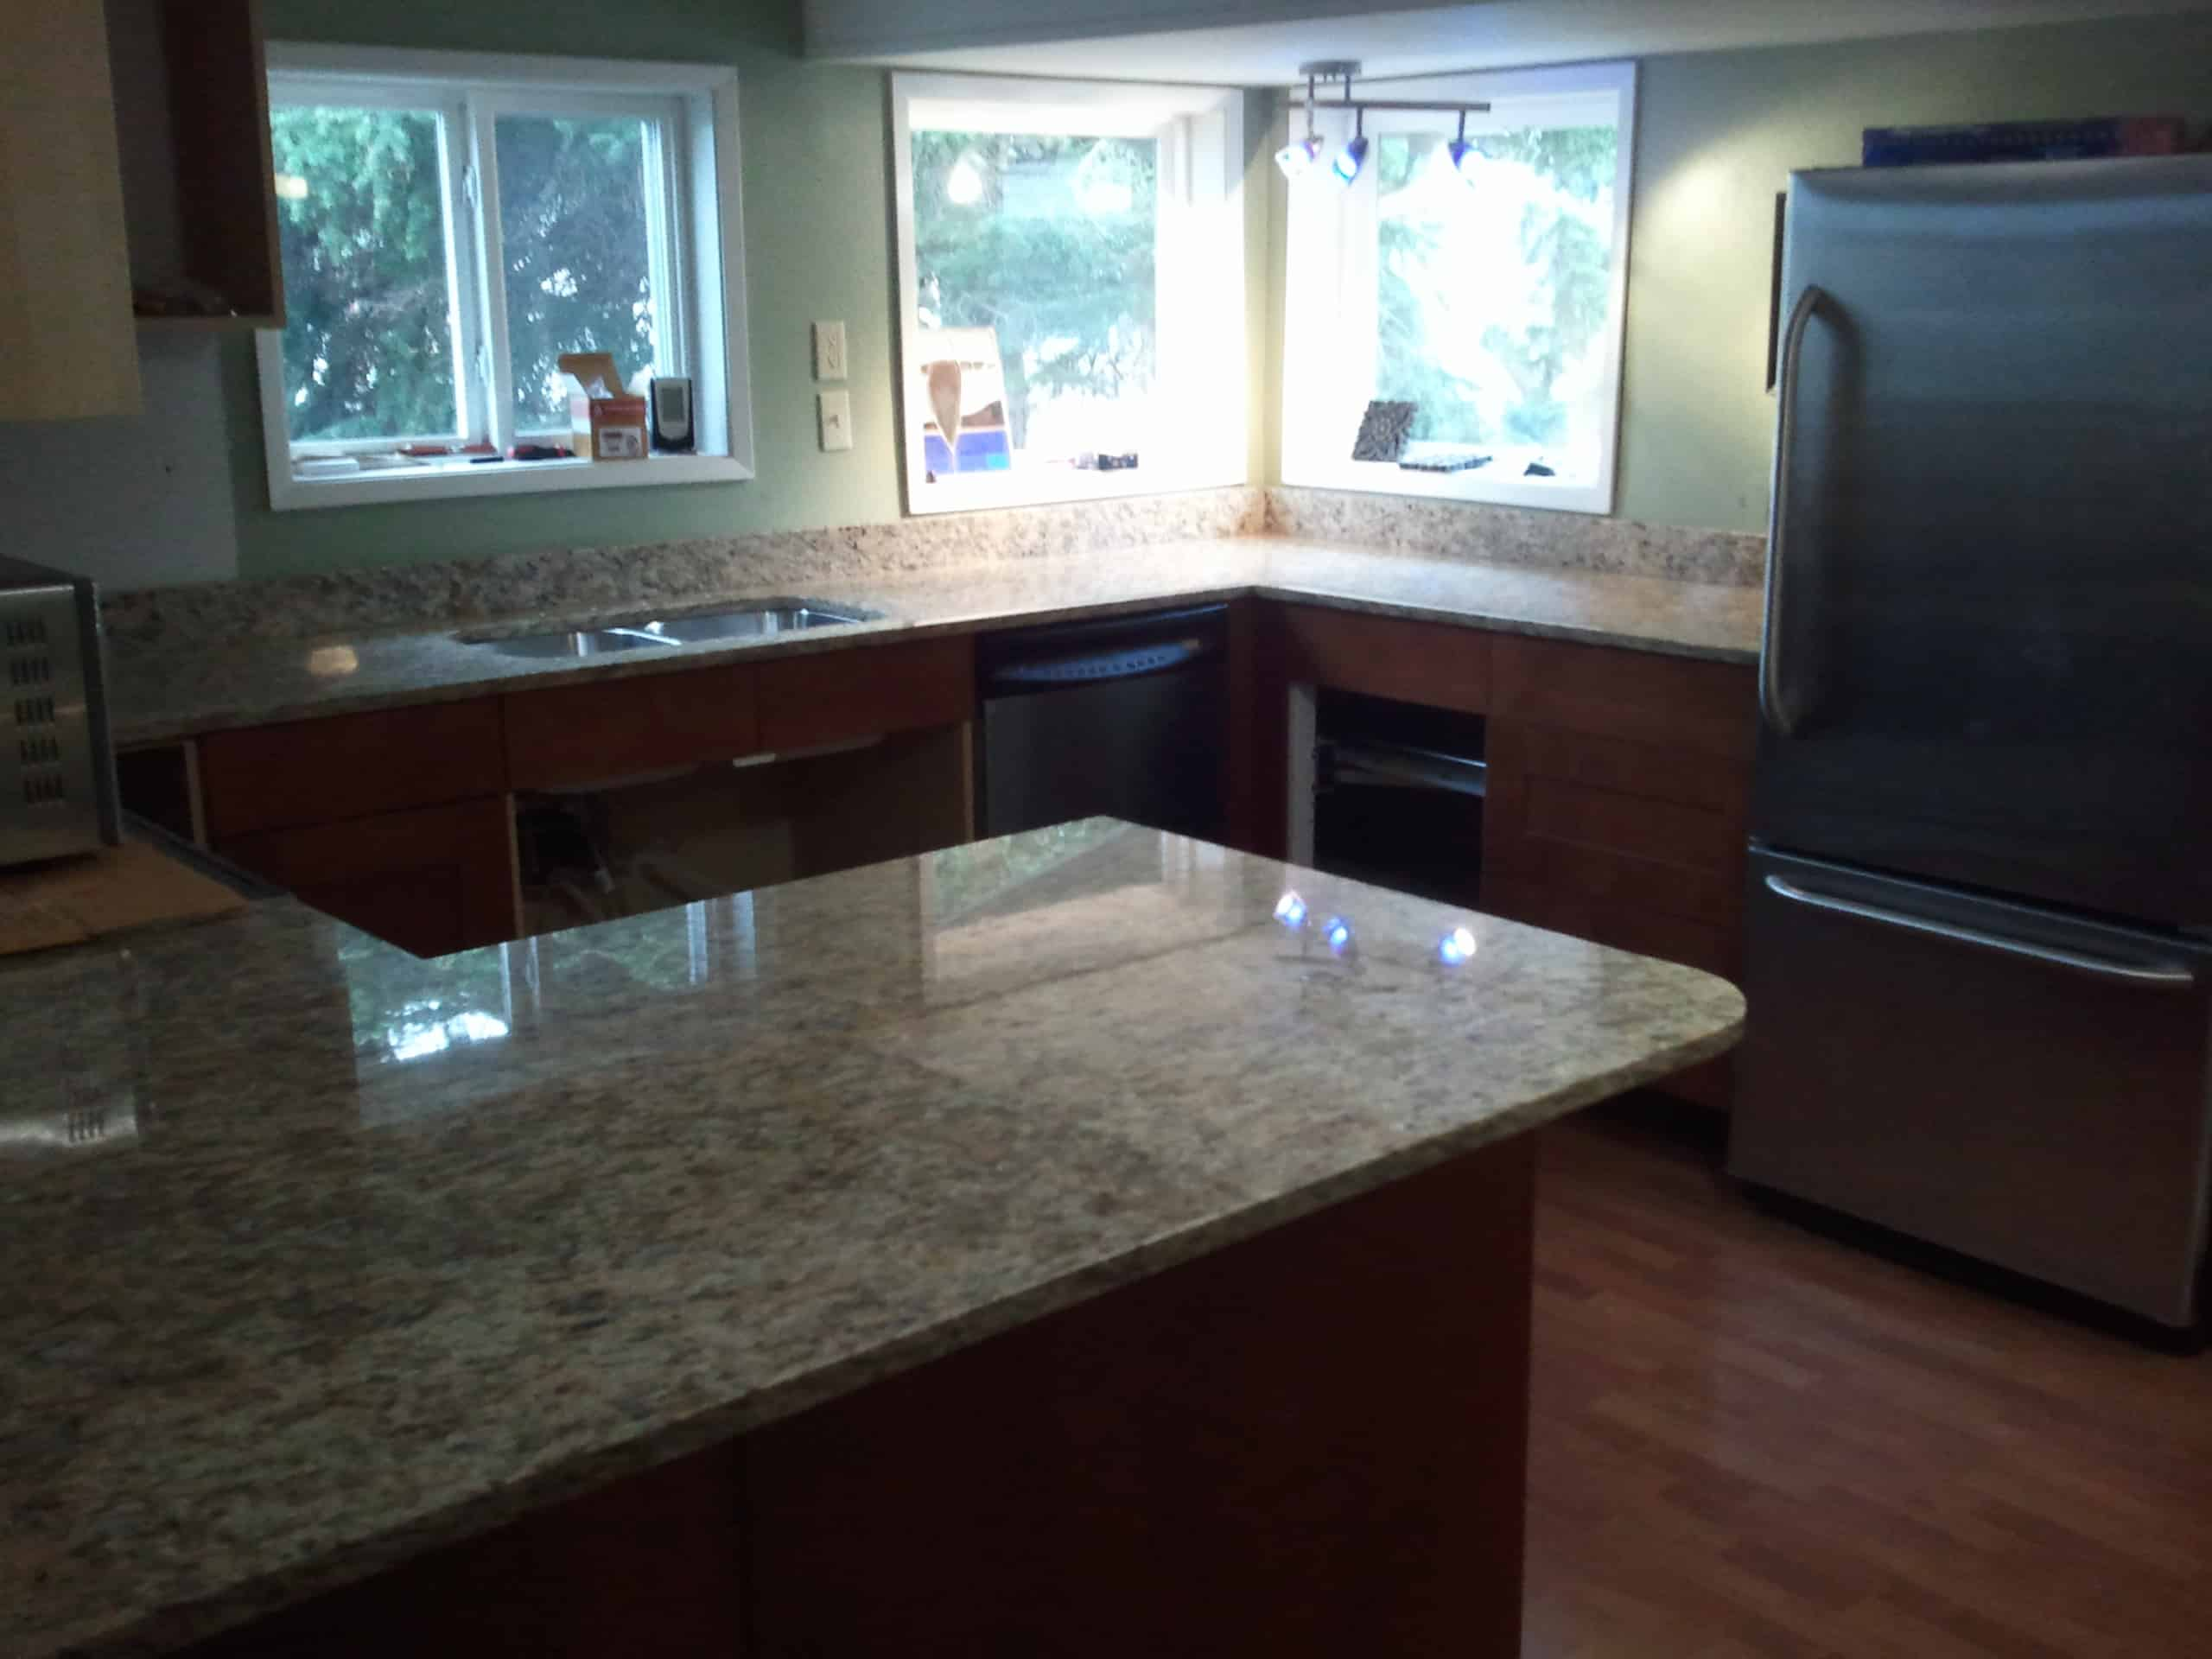 how much does laminate countertops cost granite kitchen countertops cost Laminate Countertops Prices How Much Do Granite Cost